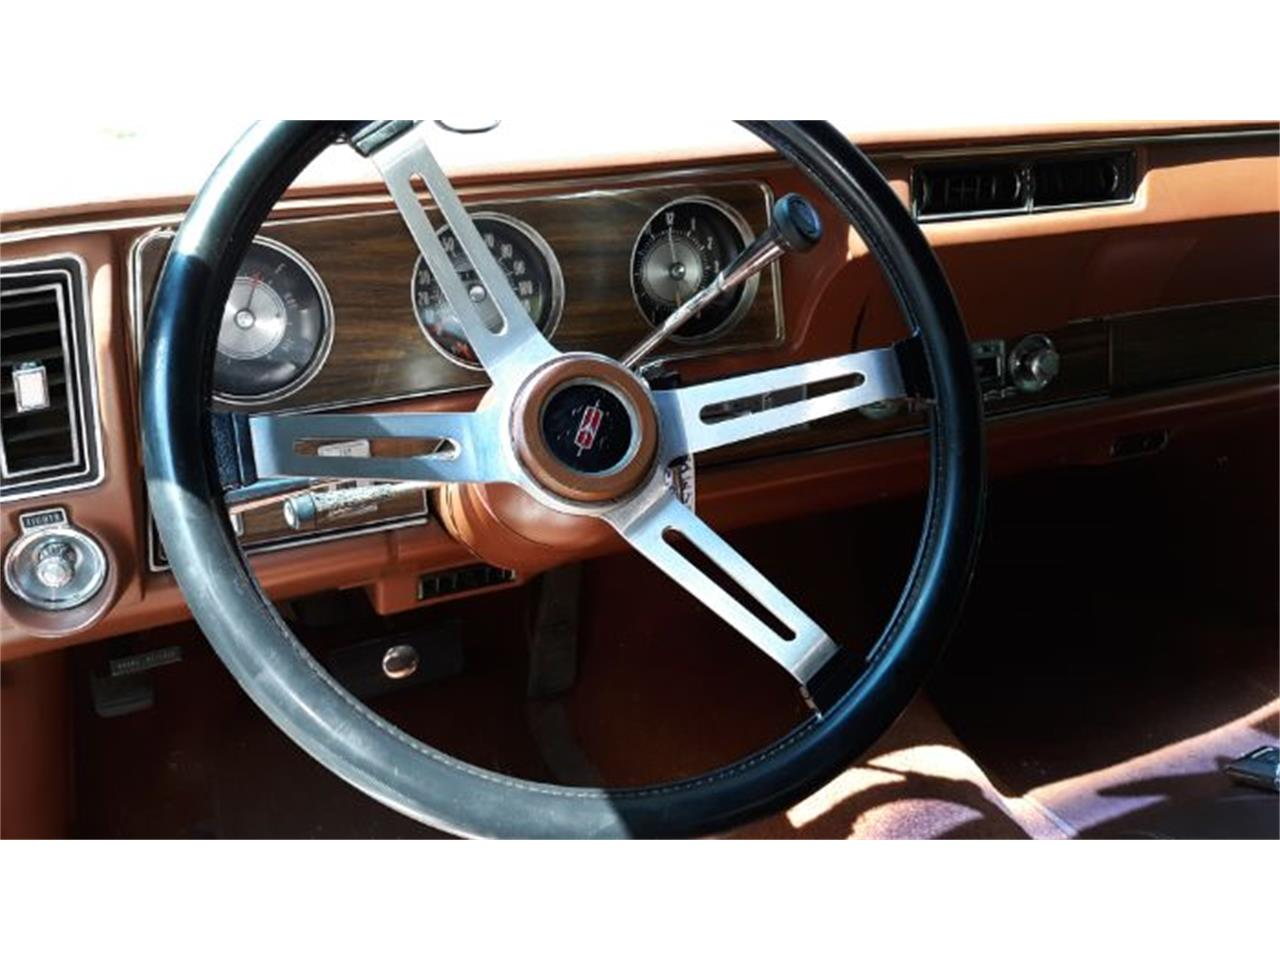 Large Picture of 1971 Oldsmobile Cutlass located in Cadillac Michigan - $44,495.00 - Q4AH